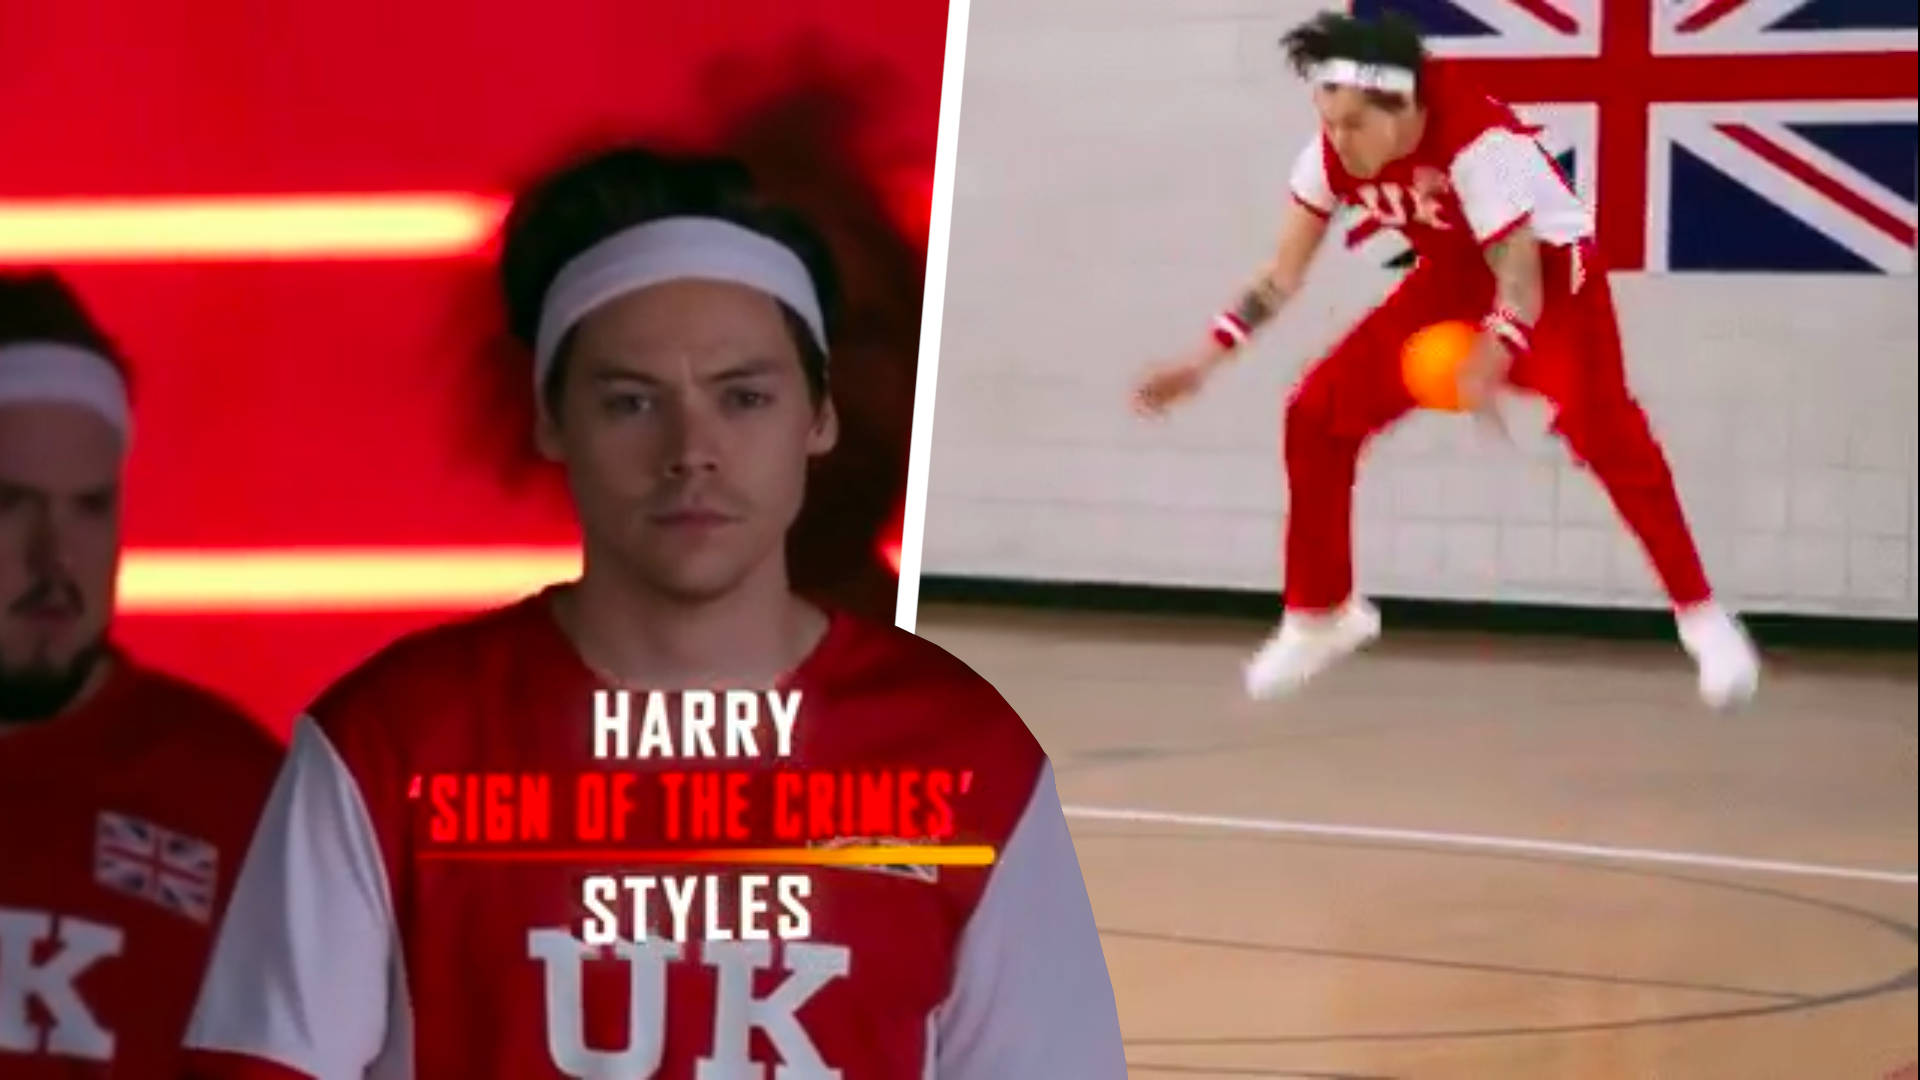 WATCH: Harry Styles Gets Pelted In The Groin With A Dodgeball, By Michelle Obama